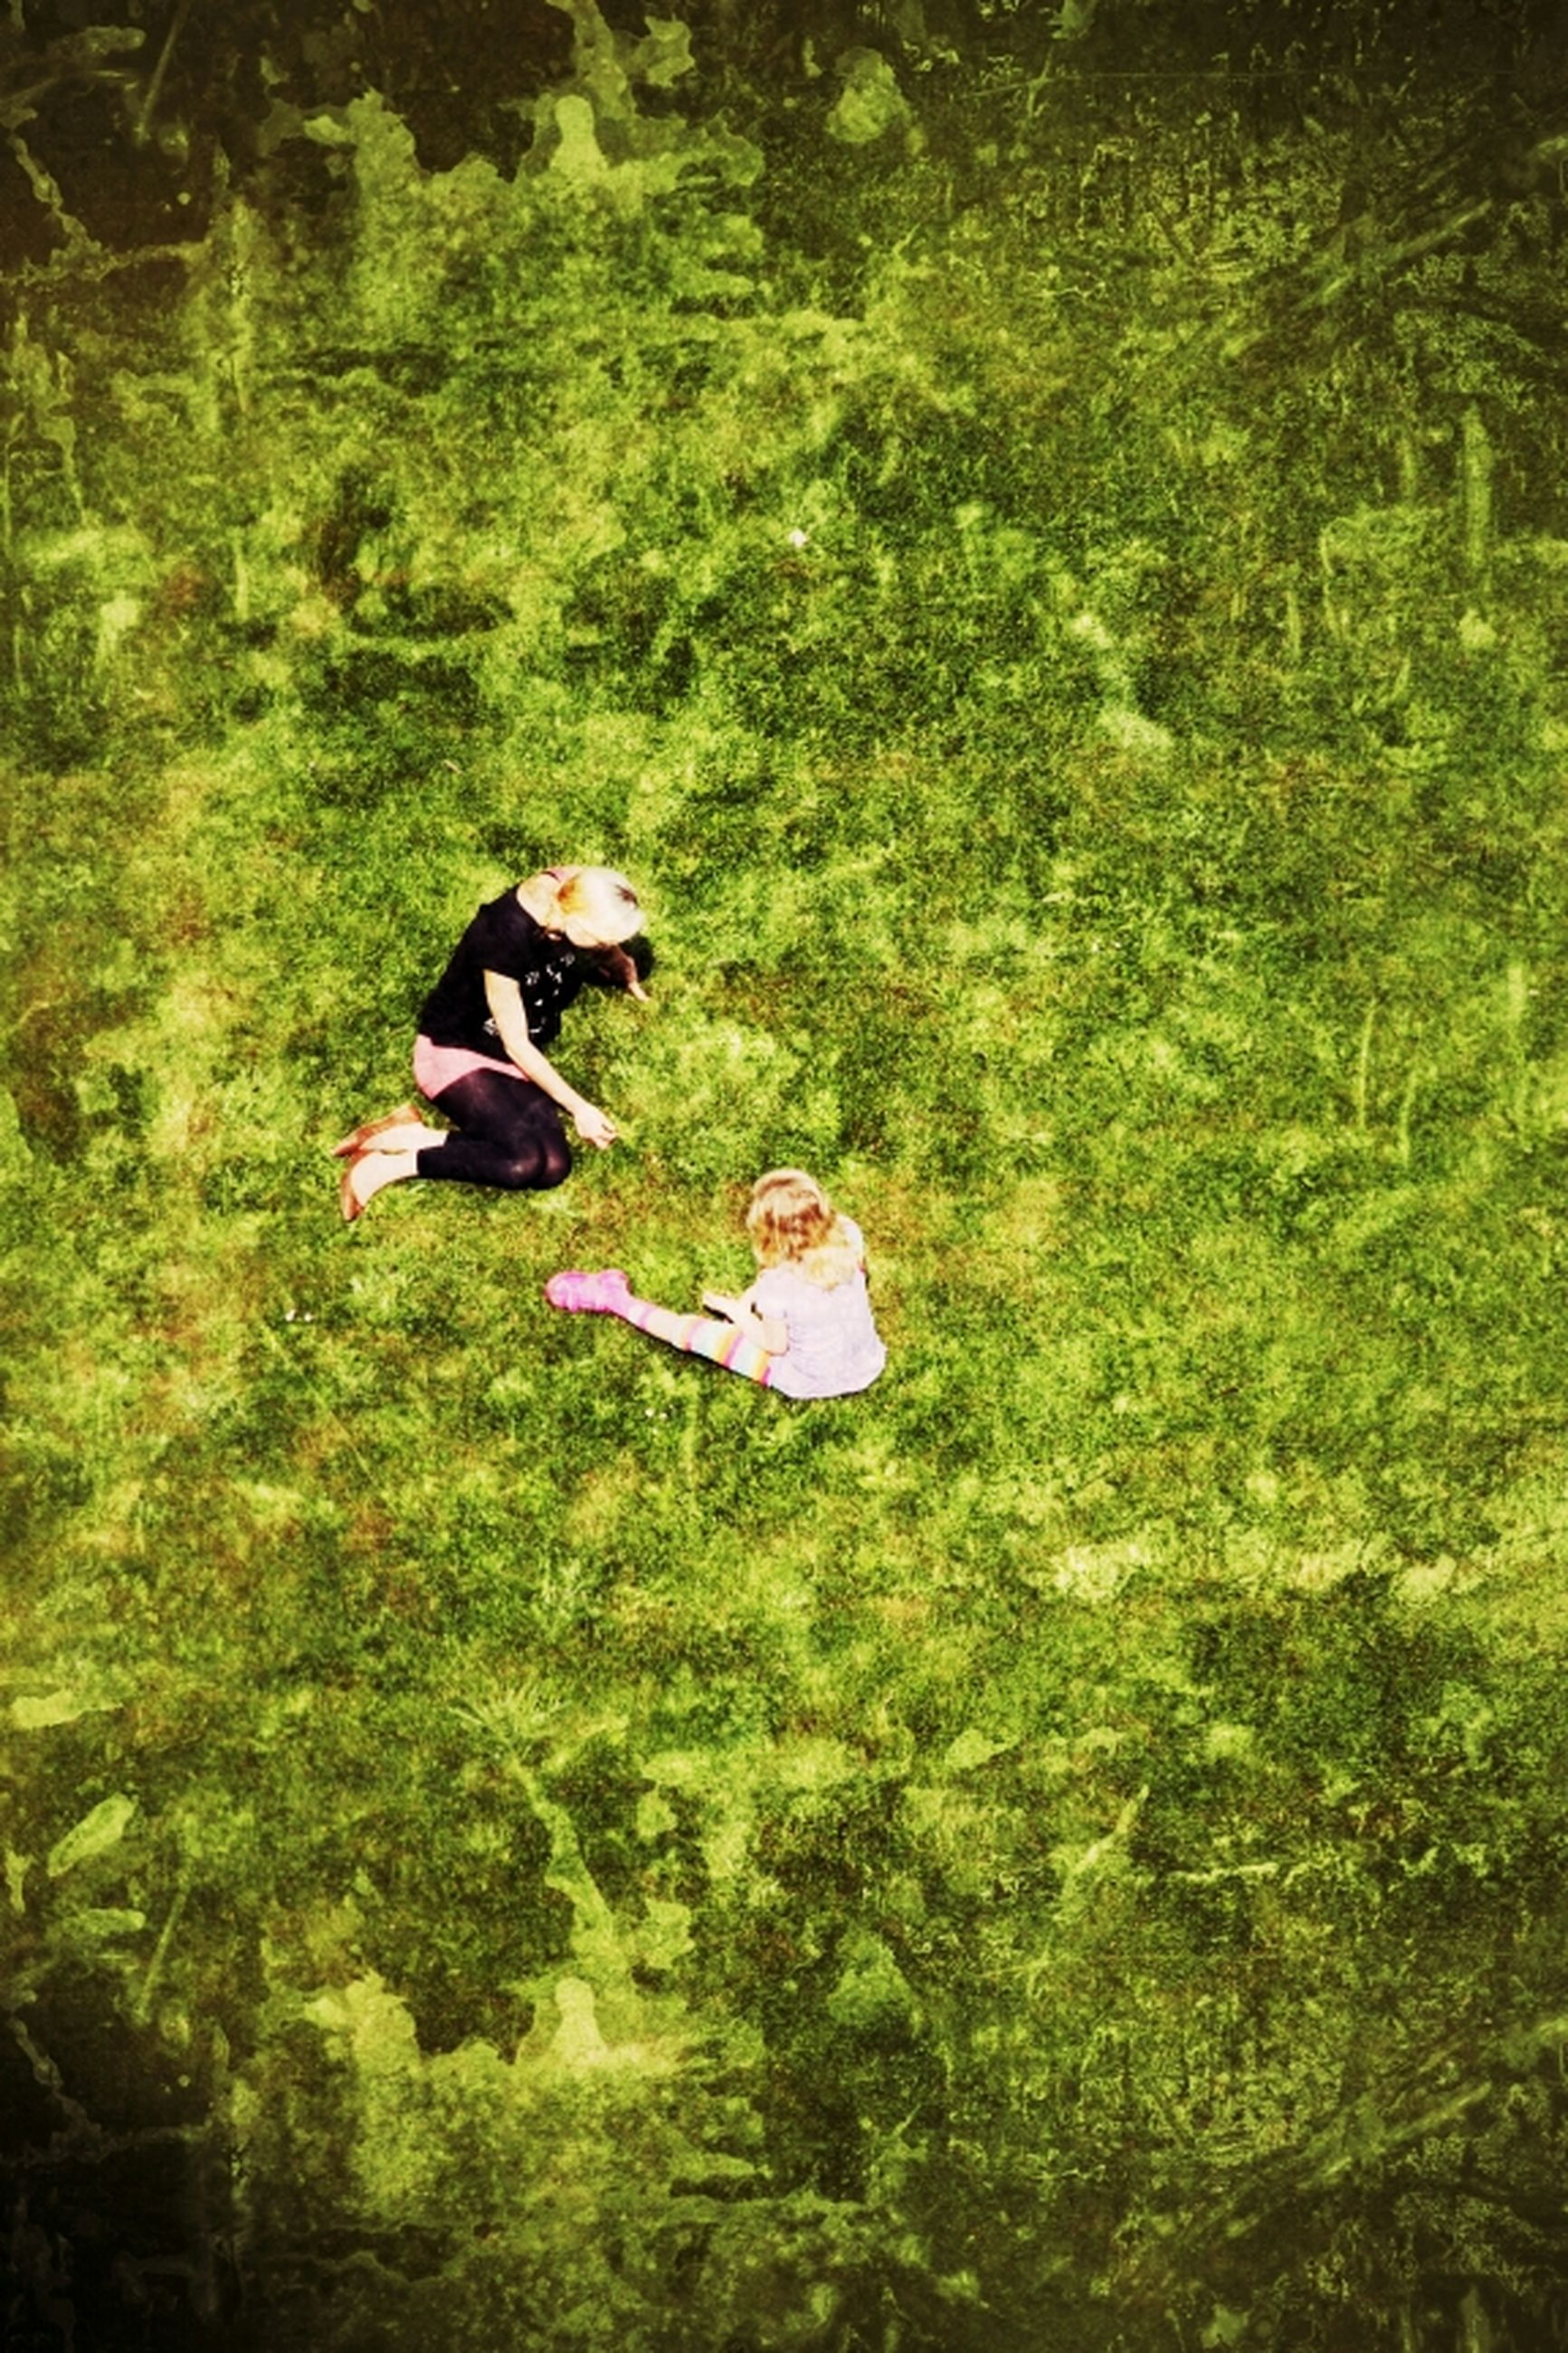 green color, grass, lifestyles, leisure activity, high angle view, men, growth, nature, full length, field, tree, tranquility, day, plant, outdoors, beauty in nature, person, grassy